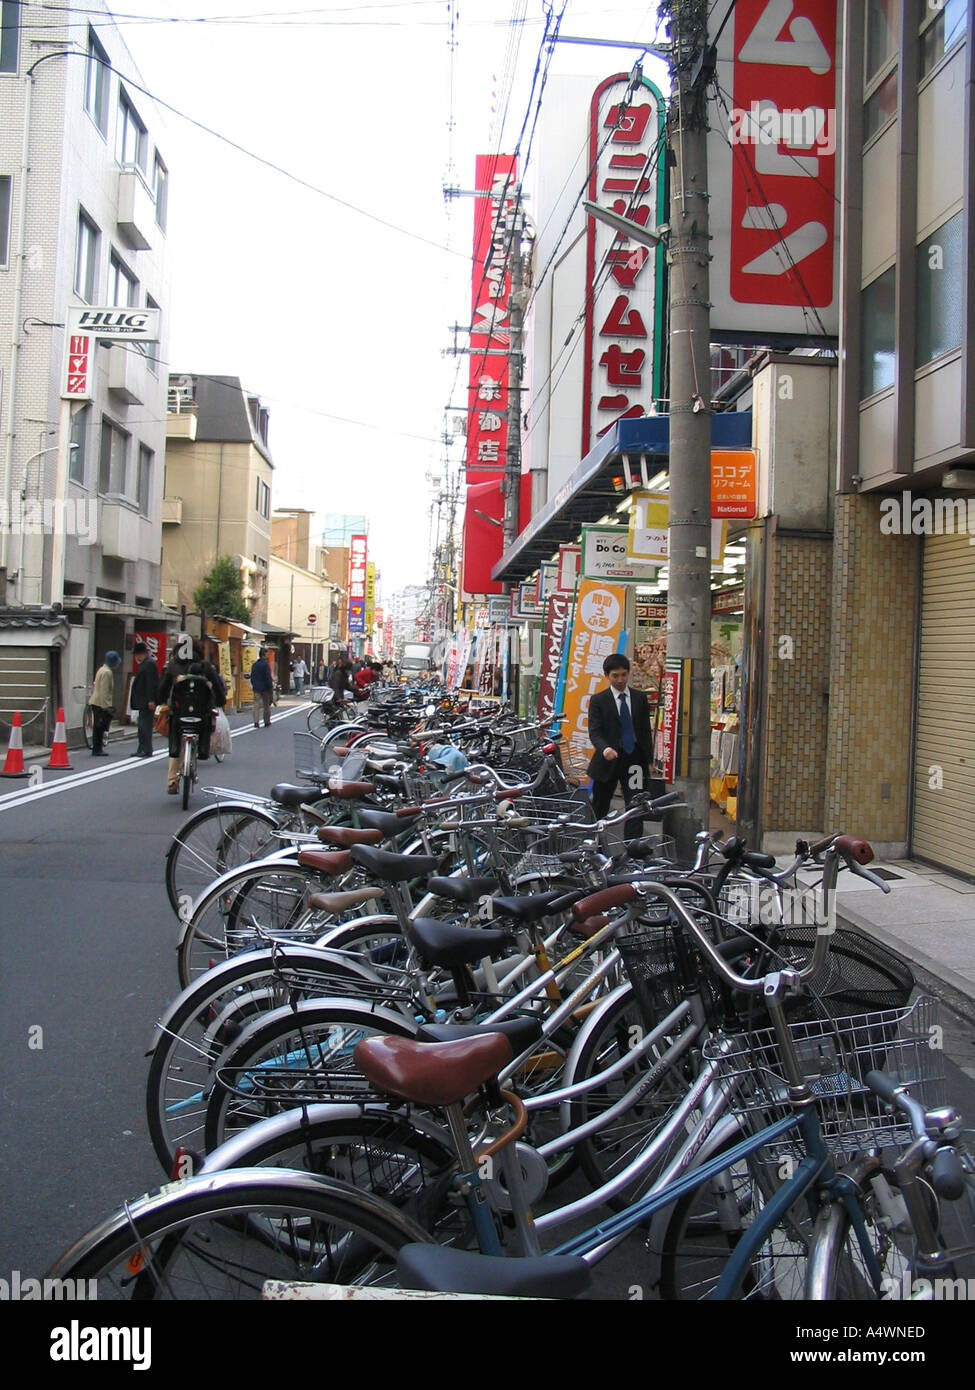 Japanese Bikes lined up on the street  Japan Stock Photo